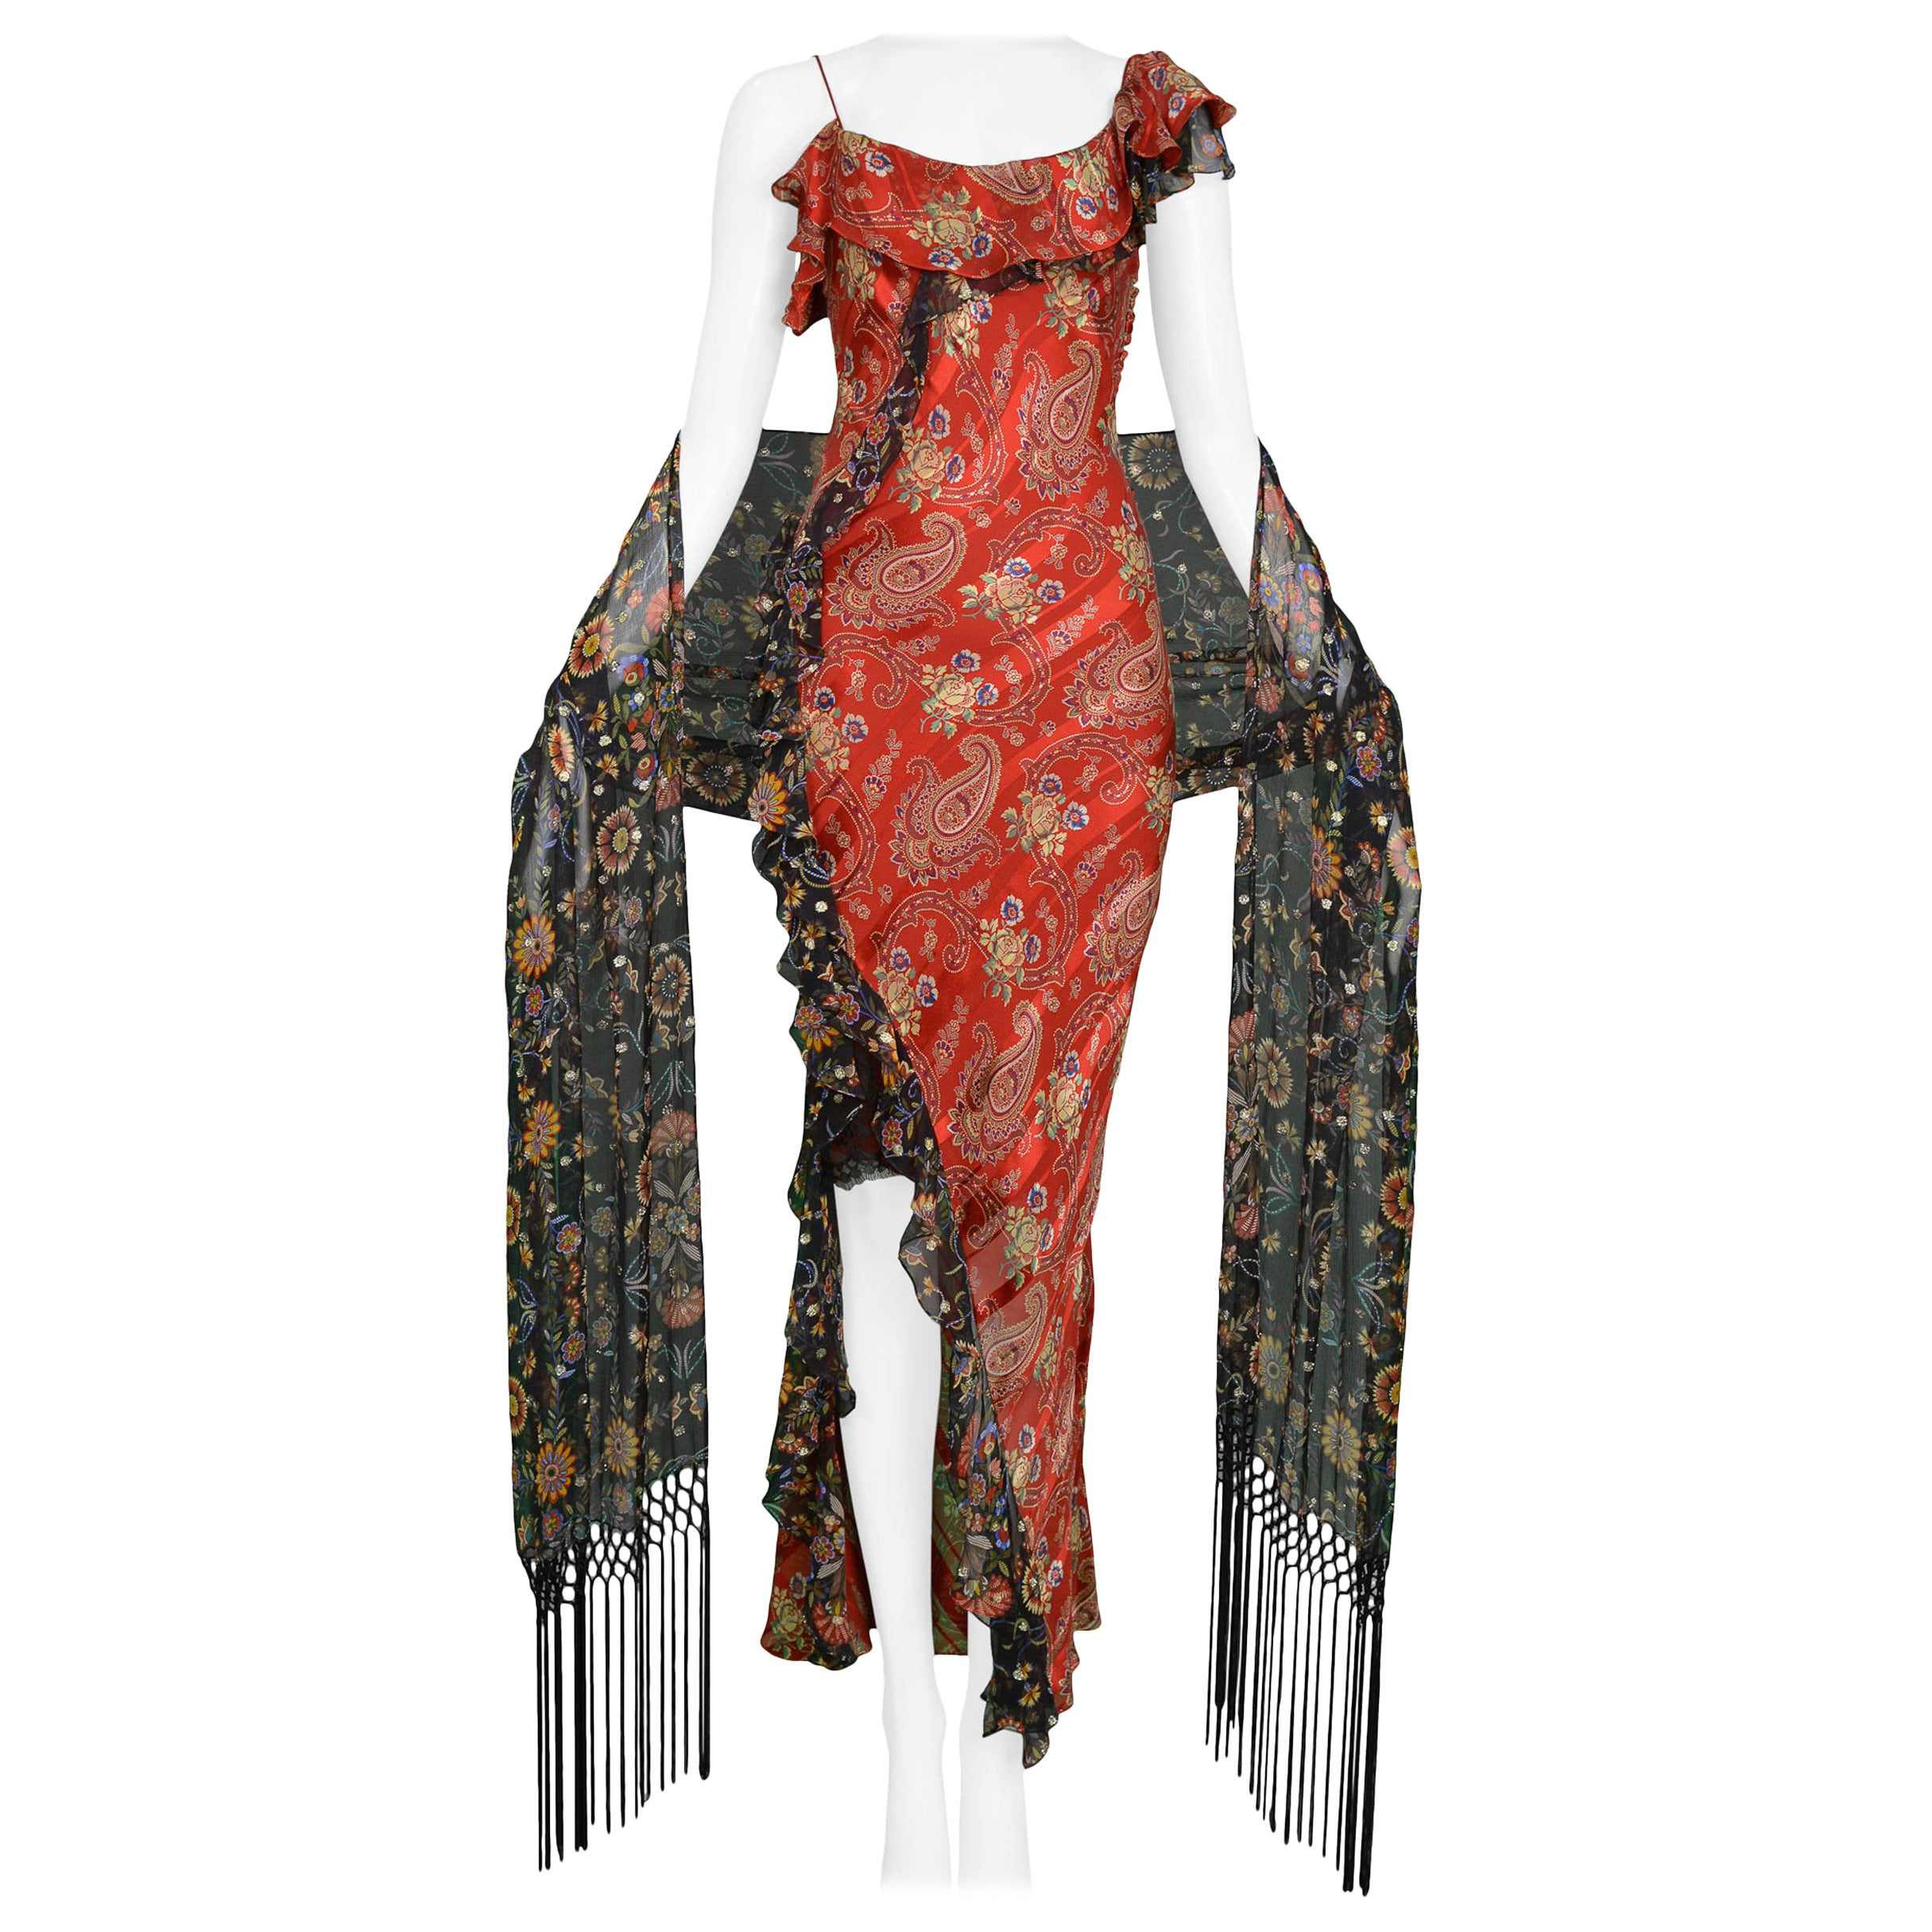 d2541a159d6 John Galliano for Dior Red Paisley Dress and Shawl Ensemble at 1stdibs